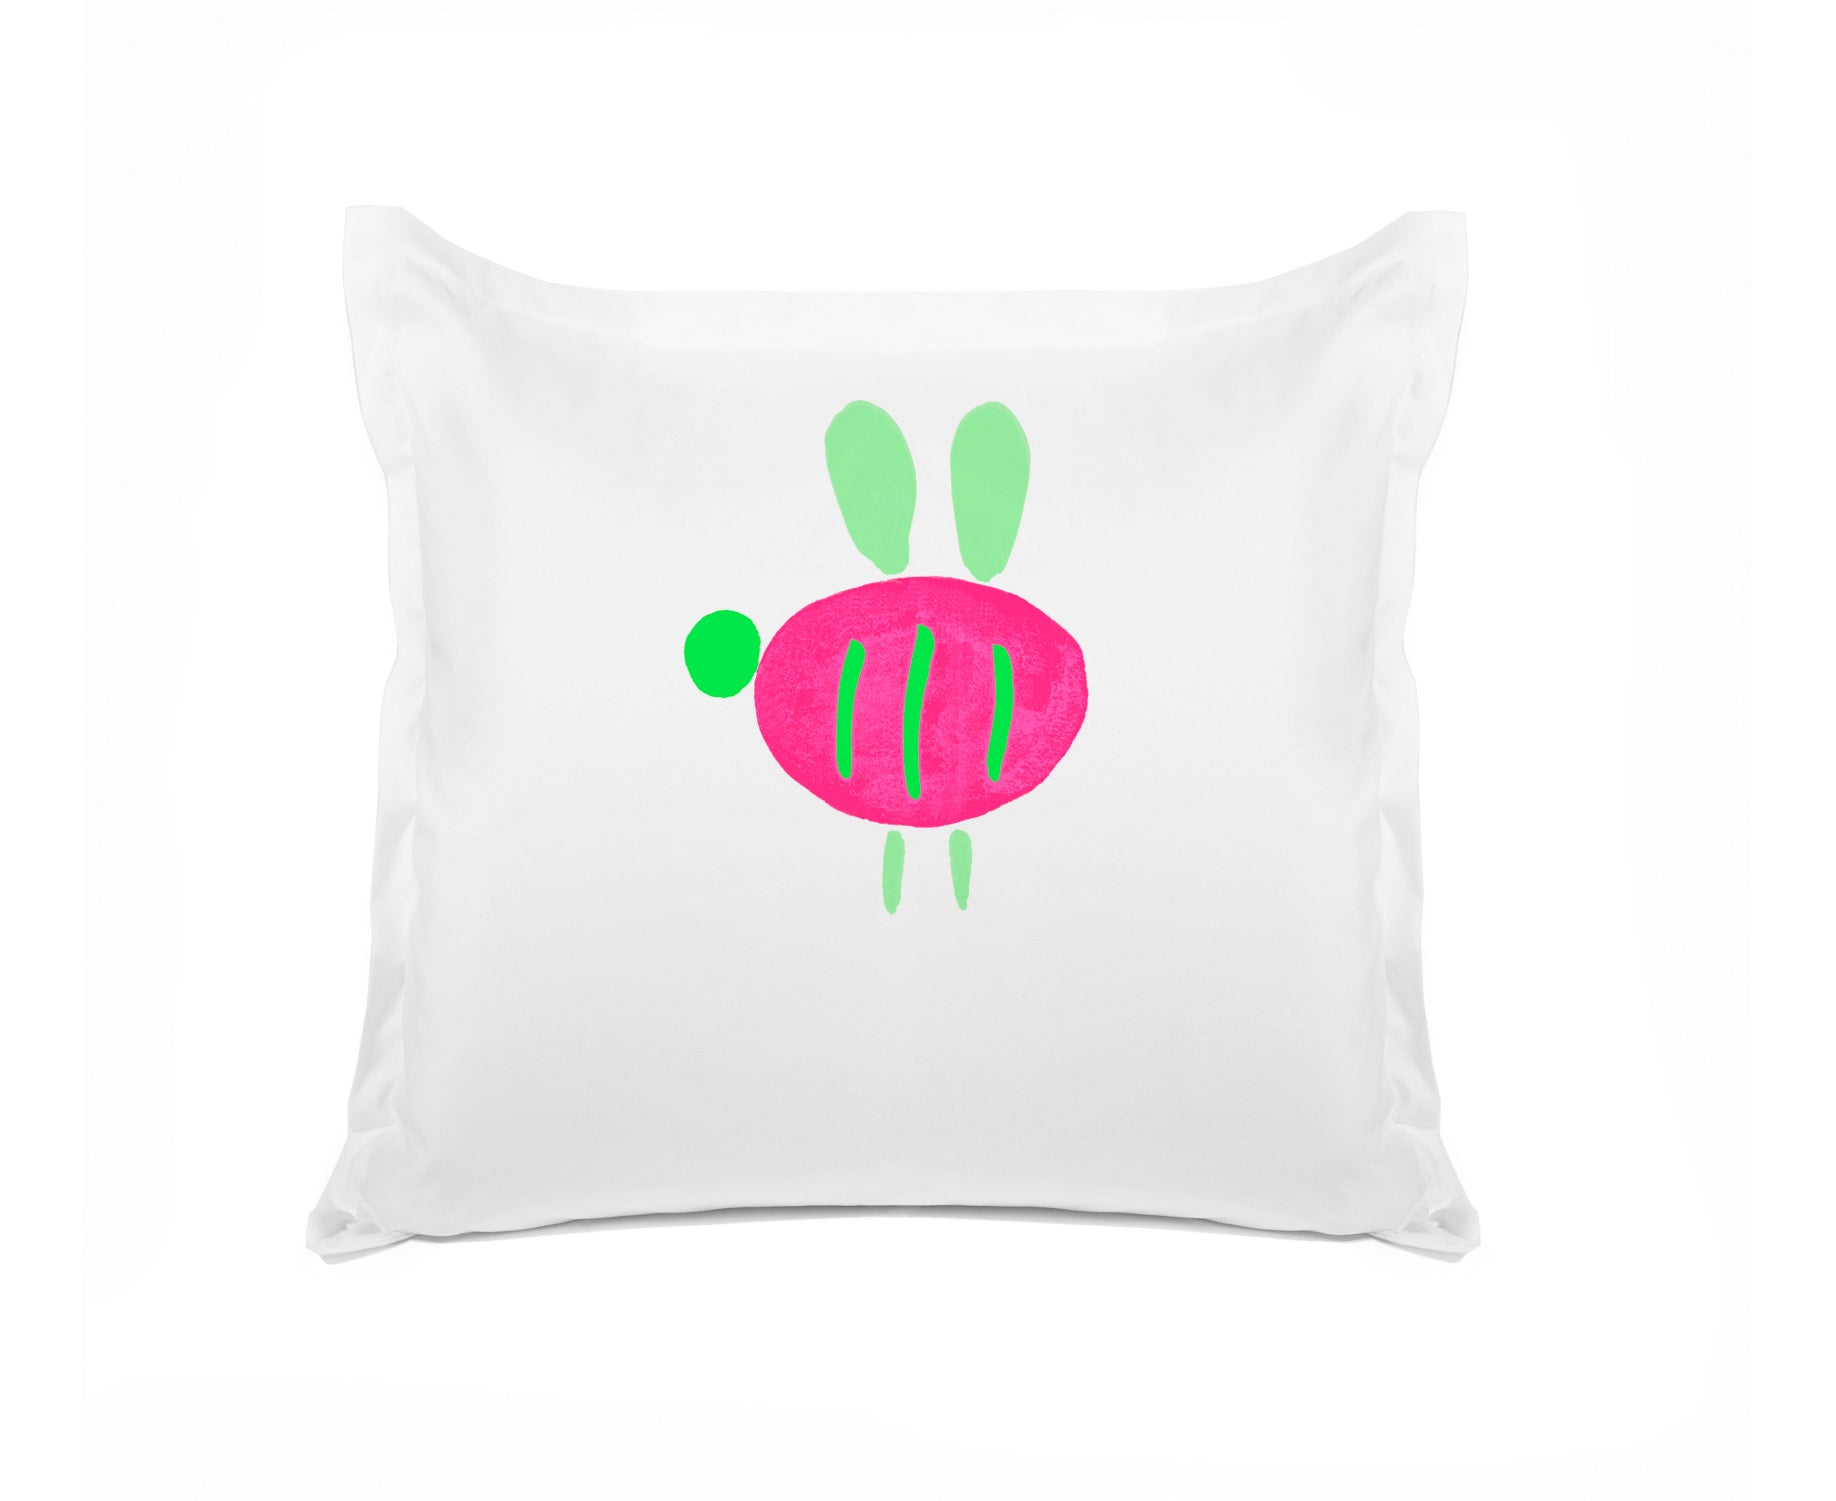 Buzzy Bee - Personalized Kids Pillowcase Collection-Di Lewis